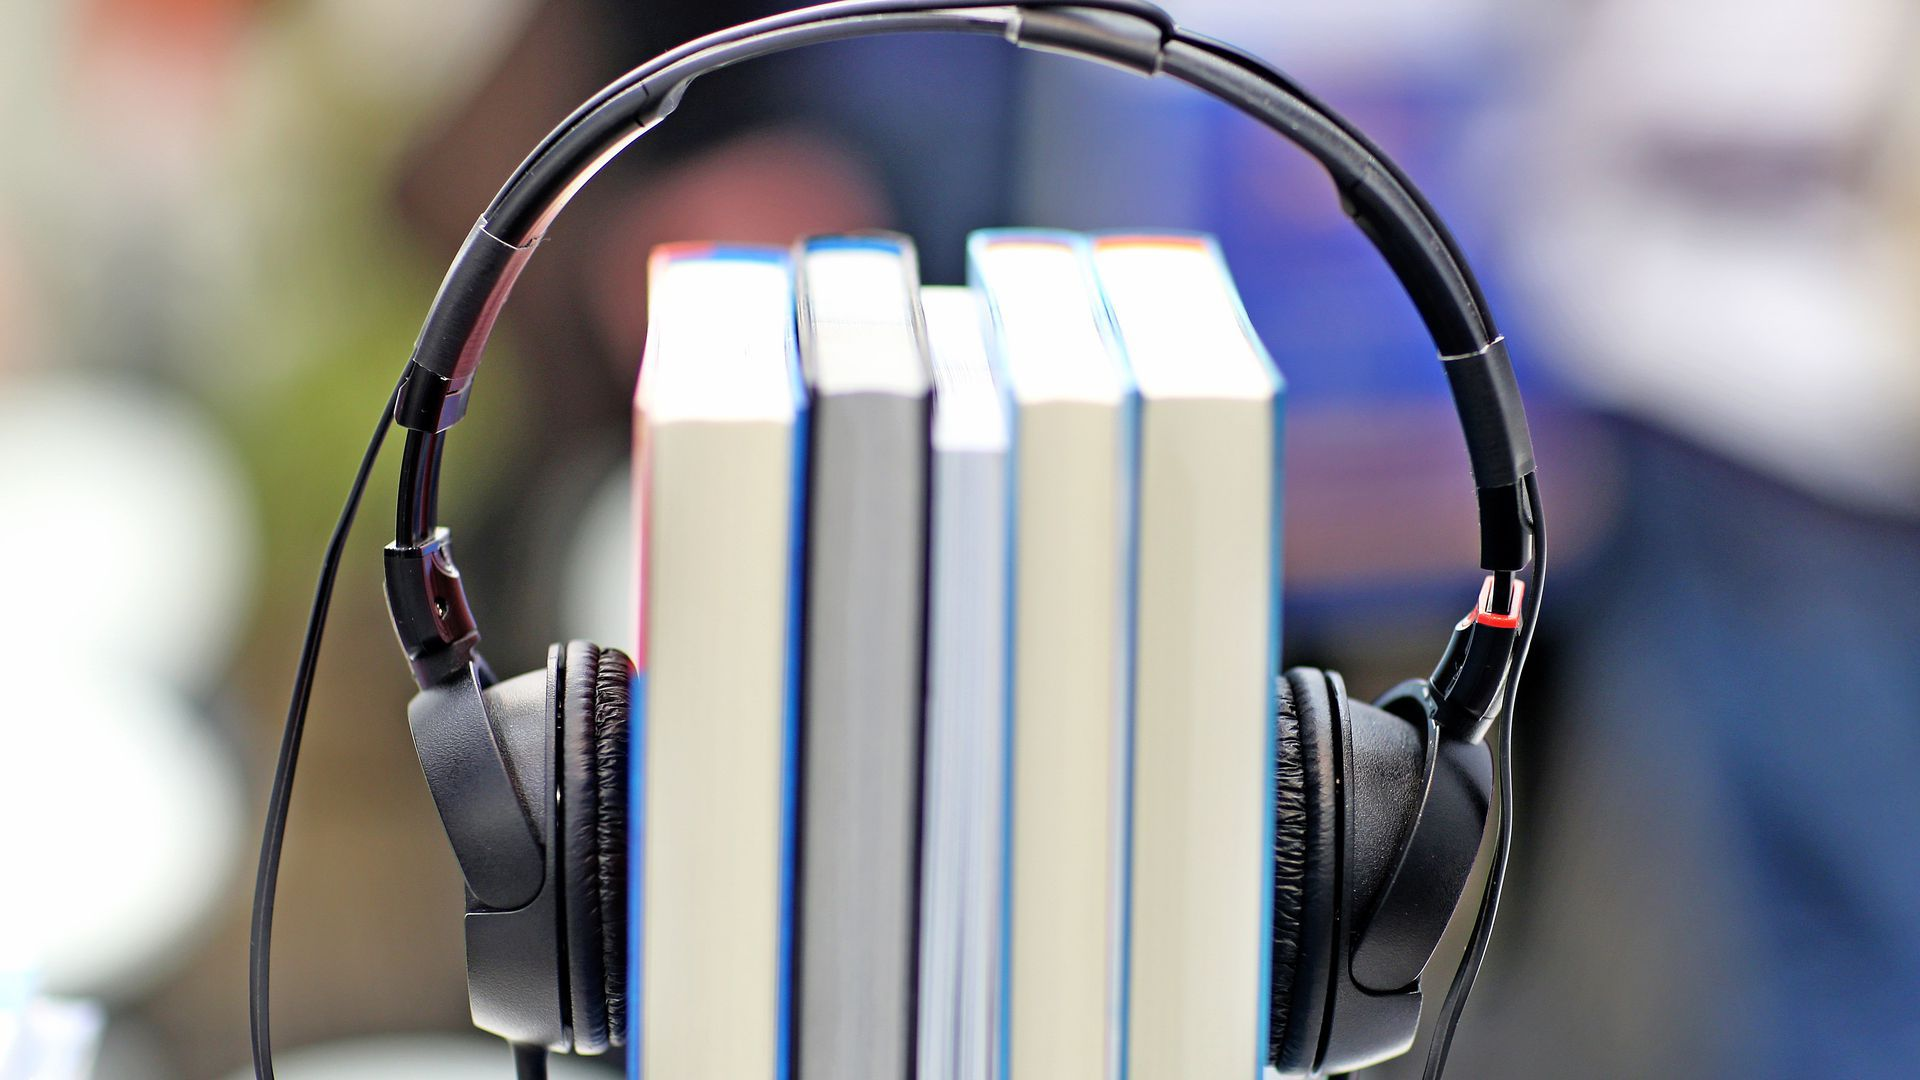 Books with headphones wrapped on them